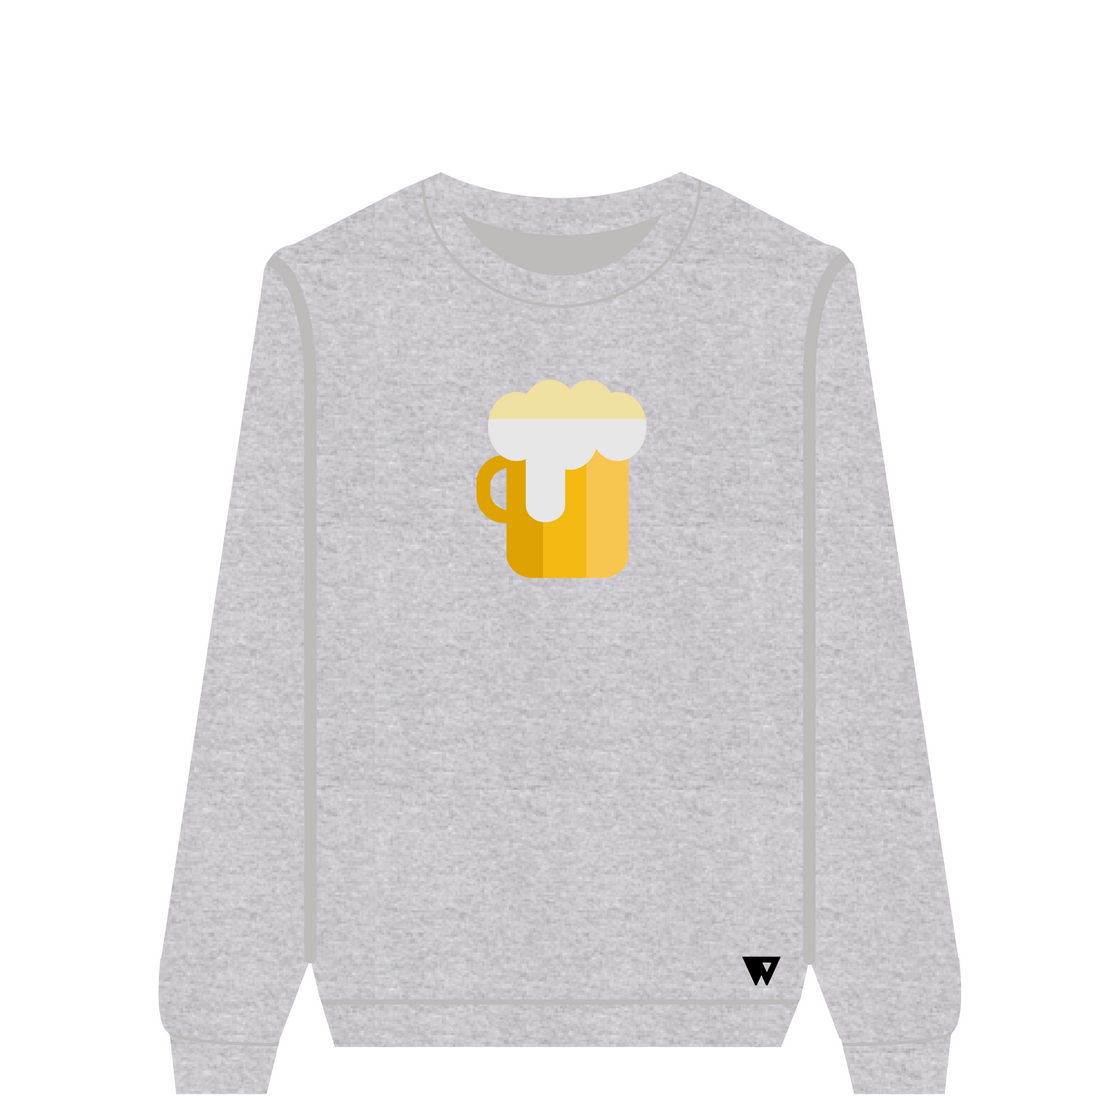 Sweatshirt Beer |Wuzzee